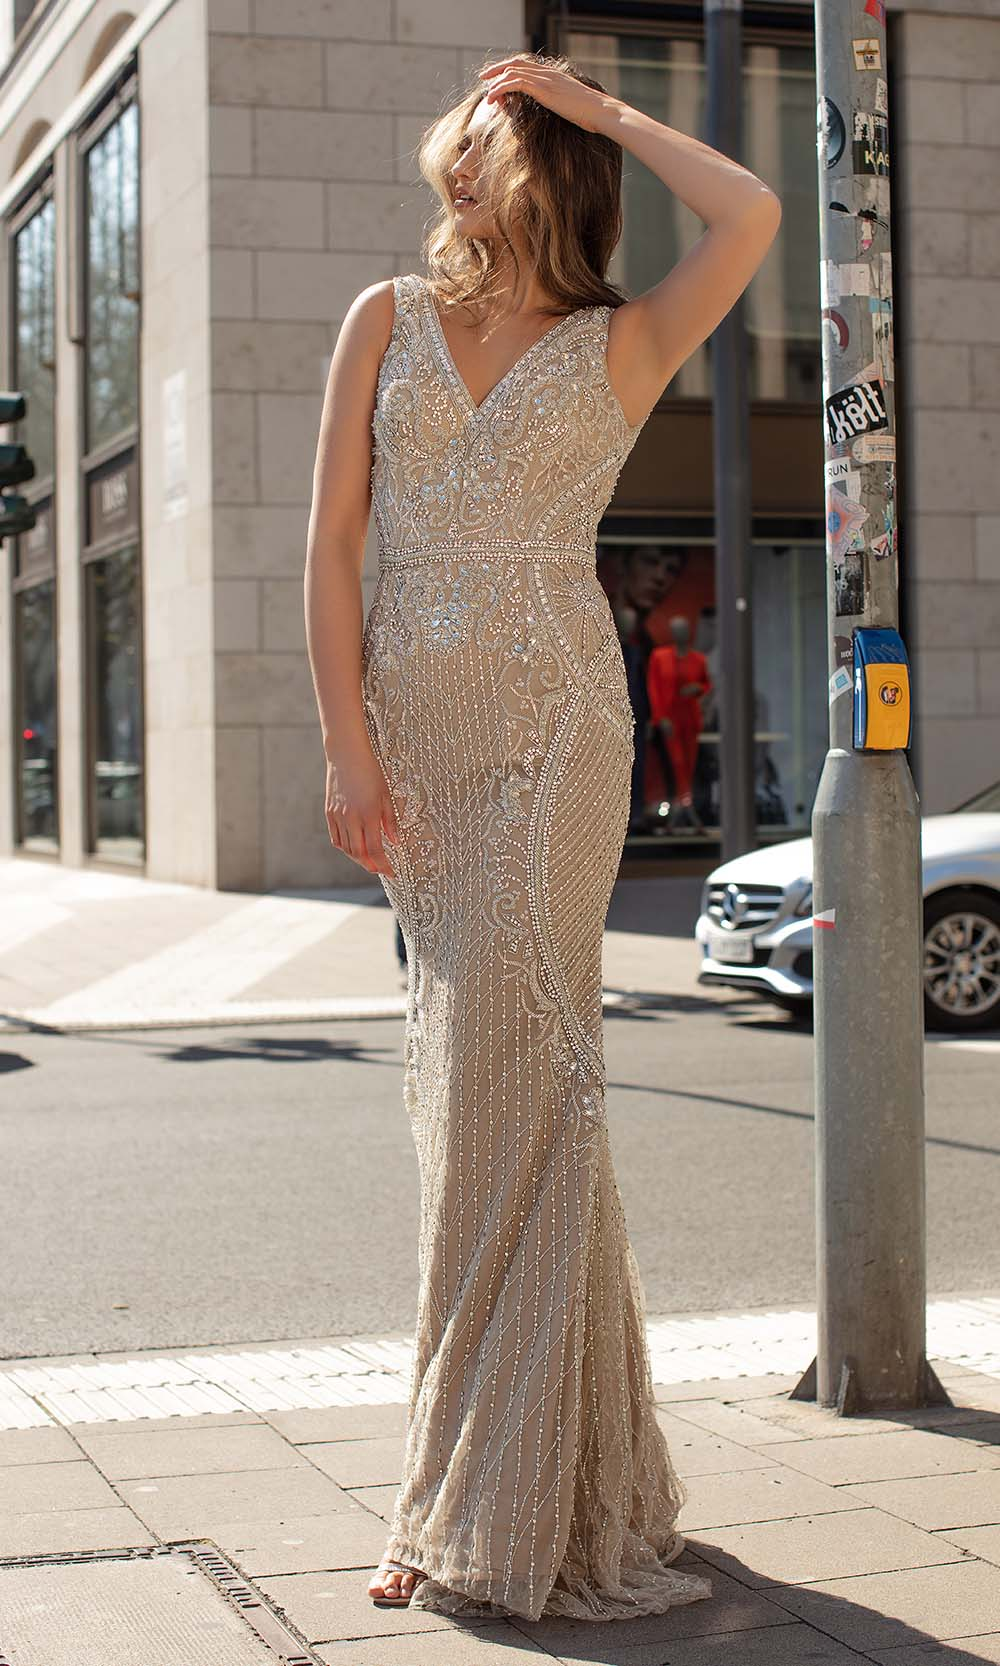 Chic and Holland - HF1569 Sequined V Neck Evening Dress from Chic and Holland